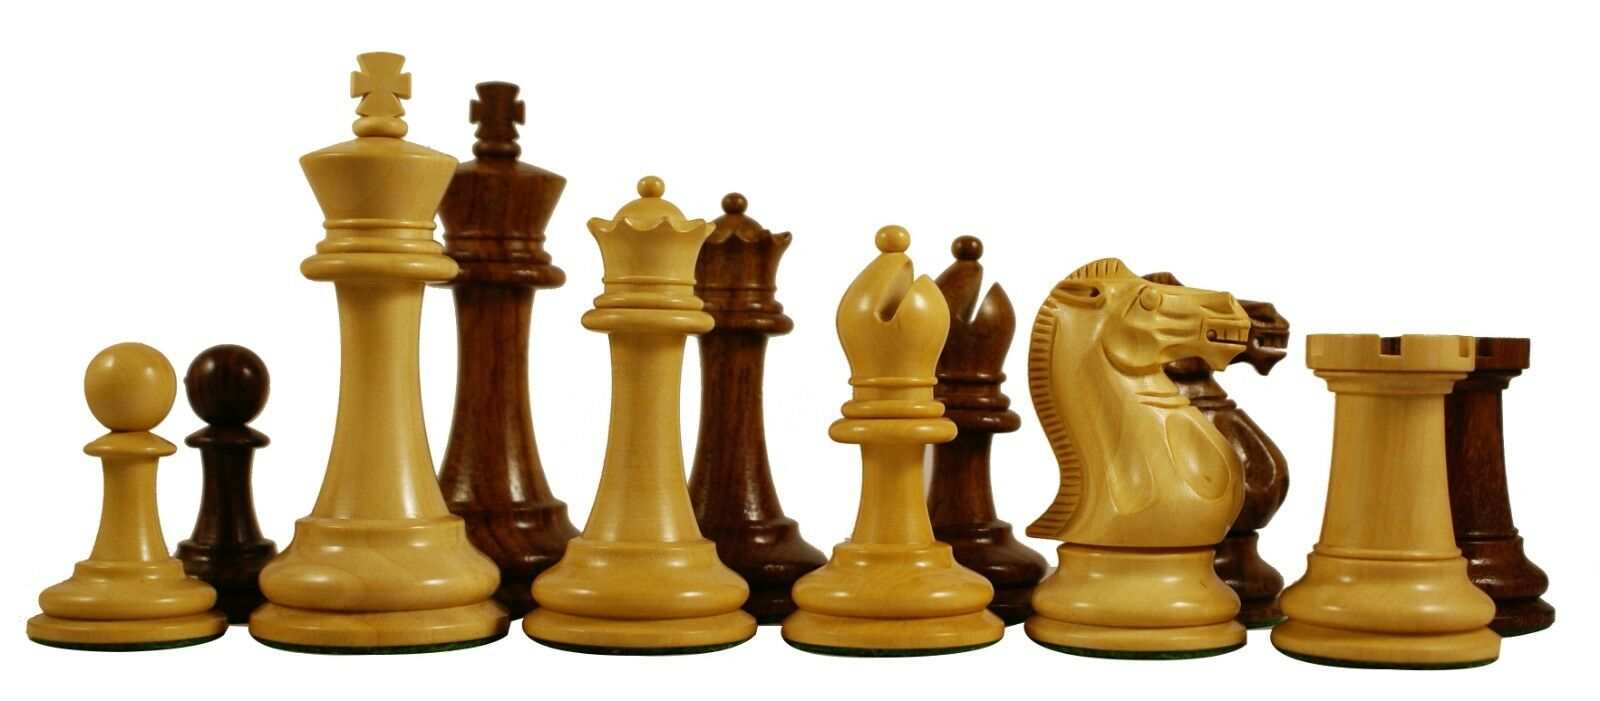 Paul Morphy Series Premium Staunton 3.5  Chess Pieces in golden pink & Box Wood